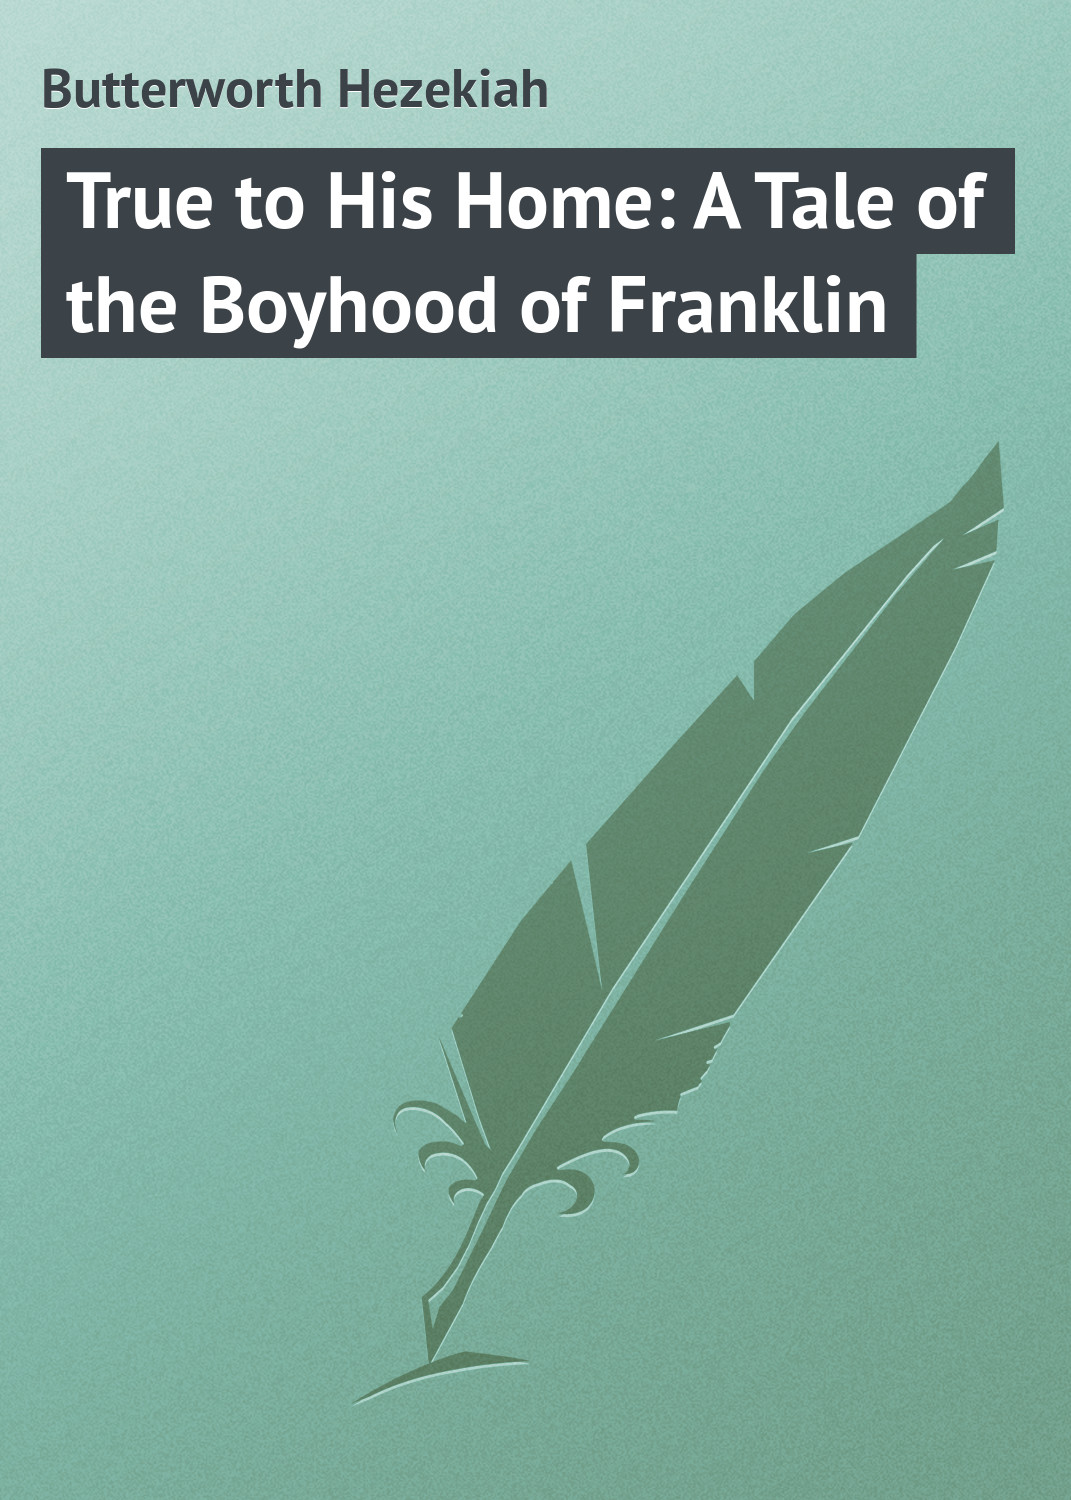 Butterworth Hezekiah True to His Home: A Tale of the Boyhood of Franklin butterworth hezekiah the story of magellan and the discovery of the philippines